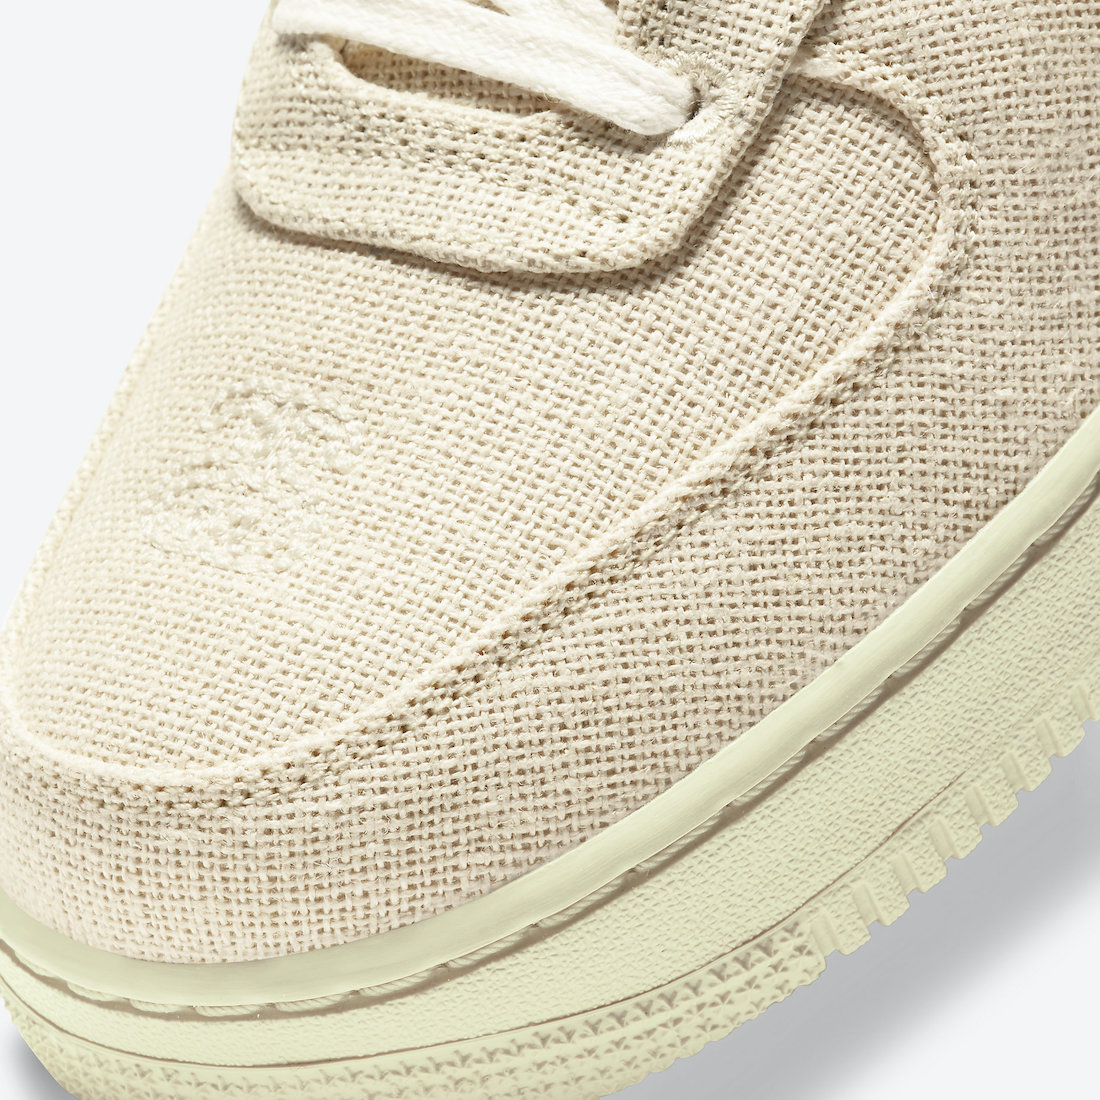 Stussy Nike Air Force 1 Fossil CZ9084-200 Release Price